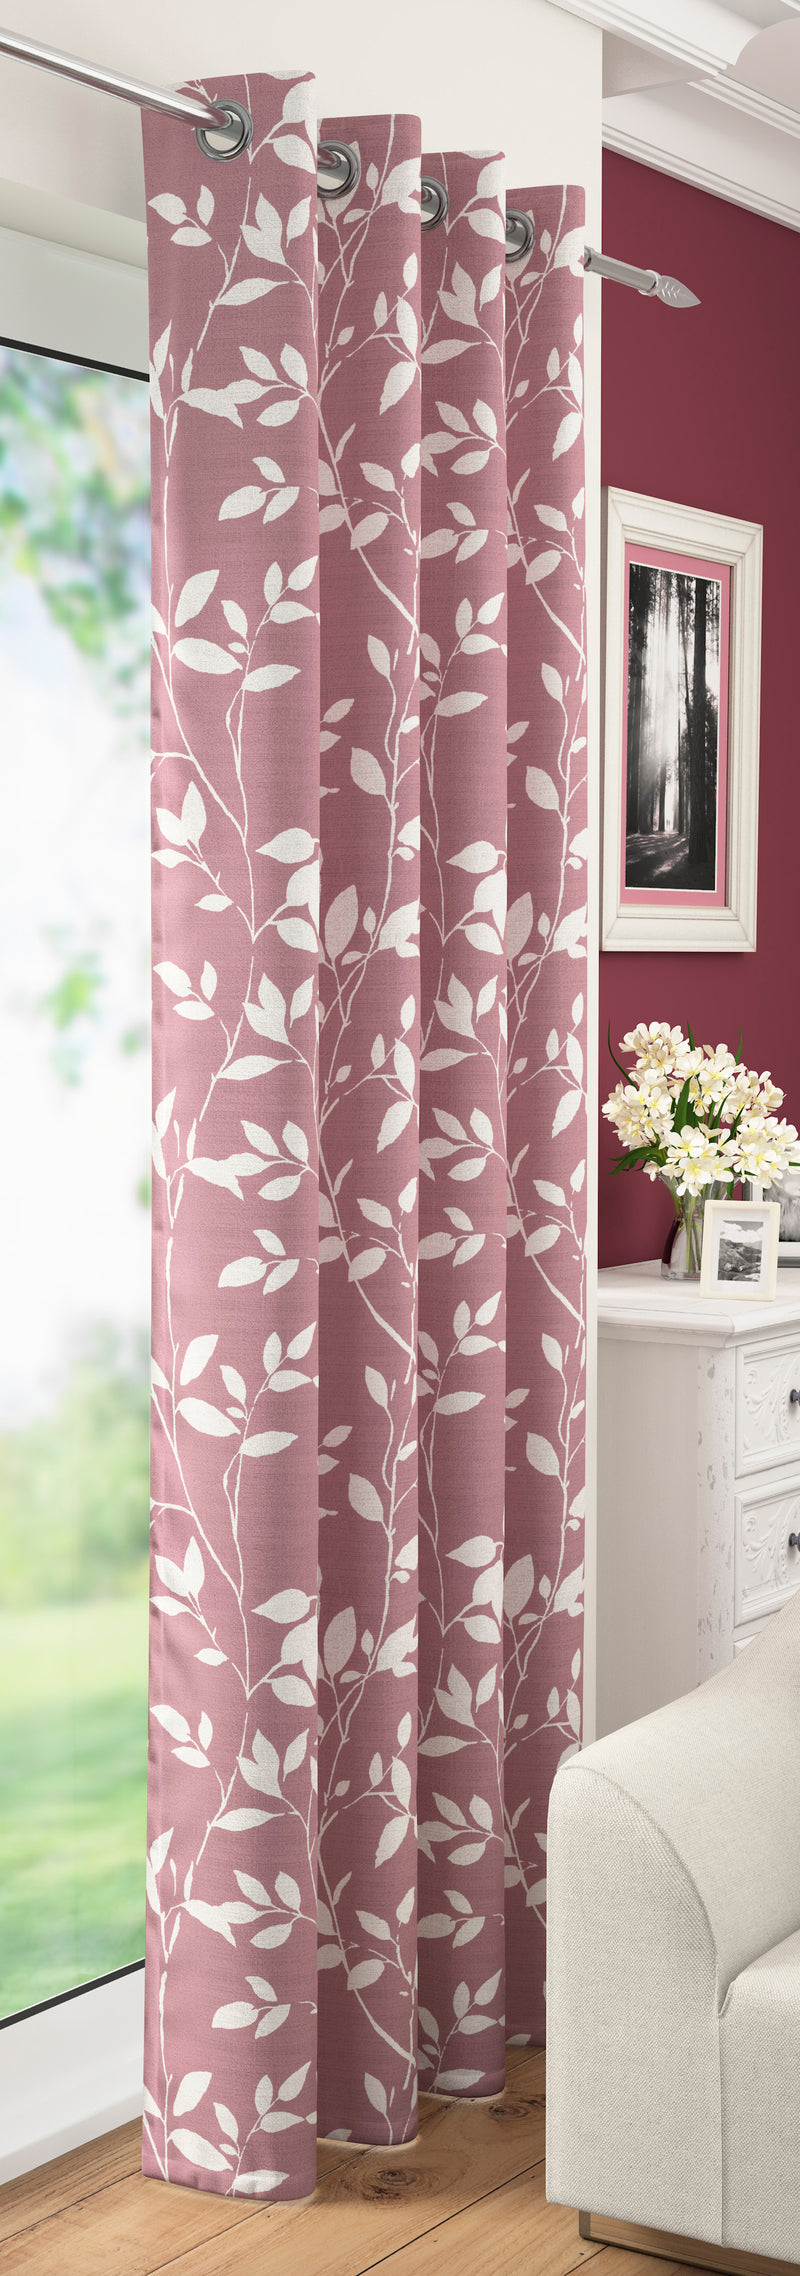 Blush Laurel Floral Leaf Voile Leaves Voile Net Curtain Eyelet Ring Top Single Panel